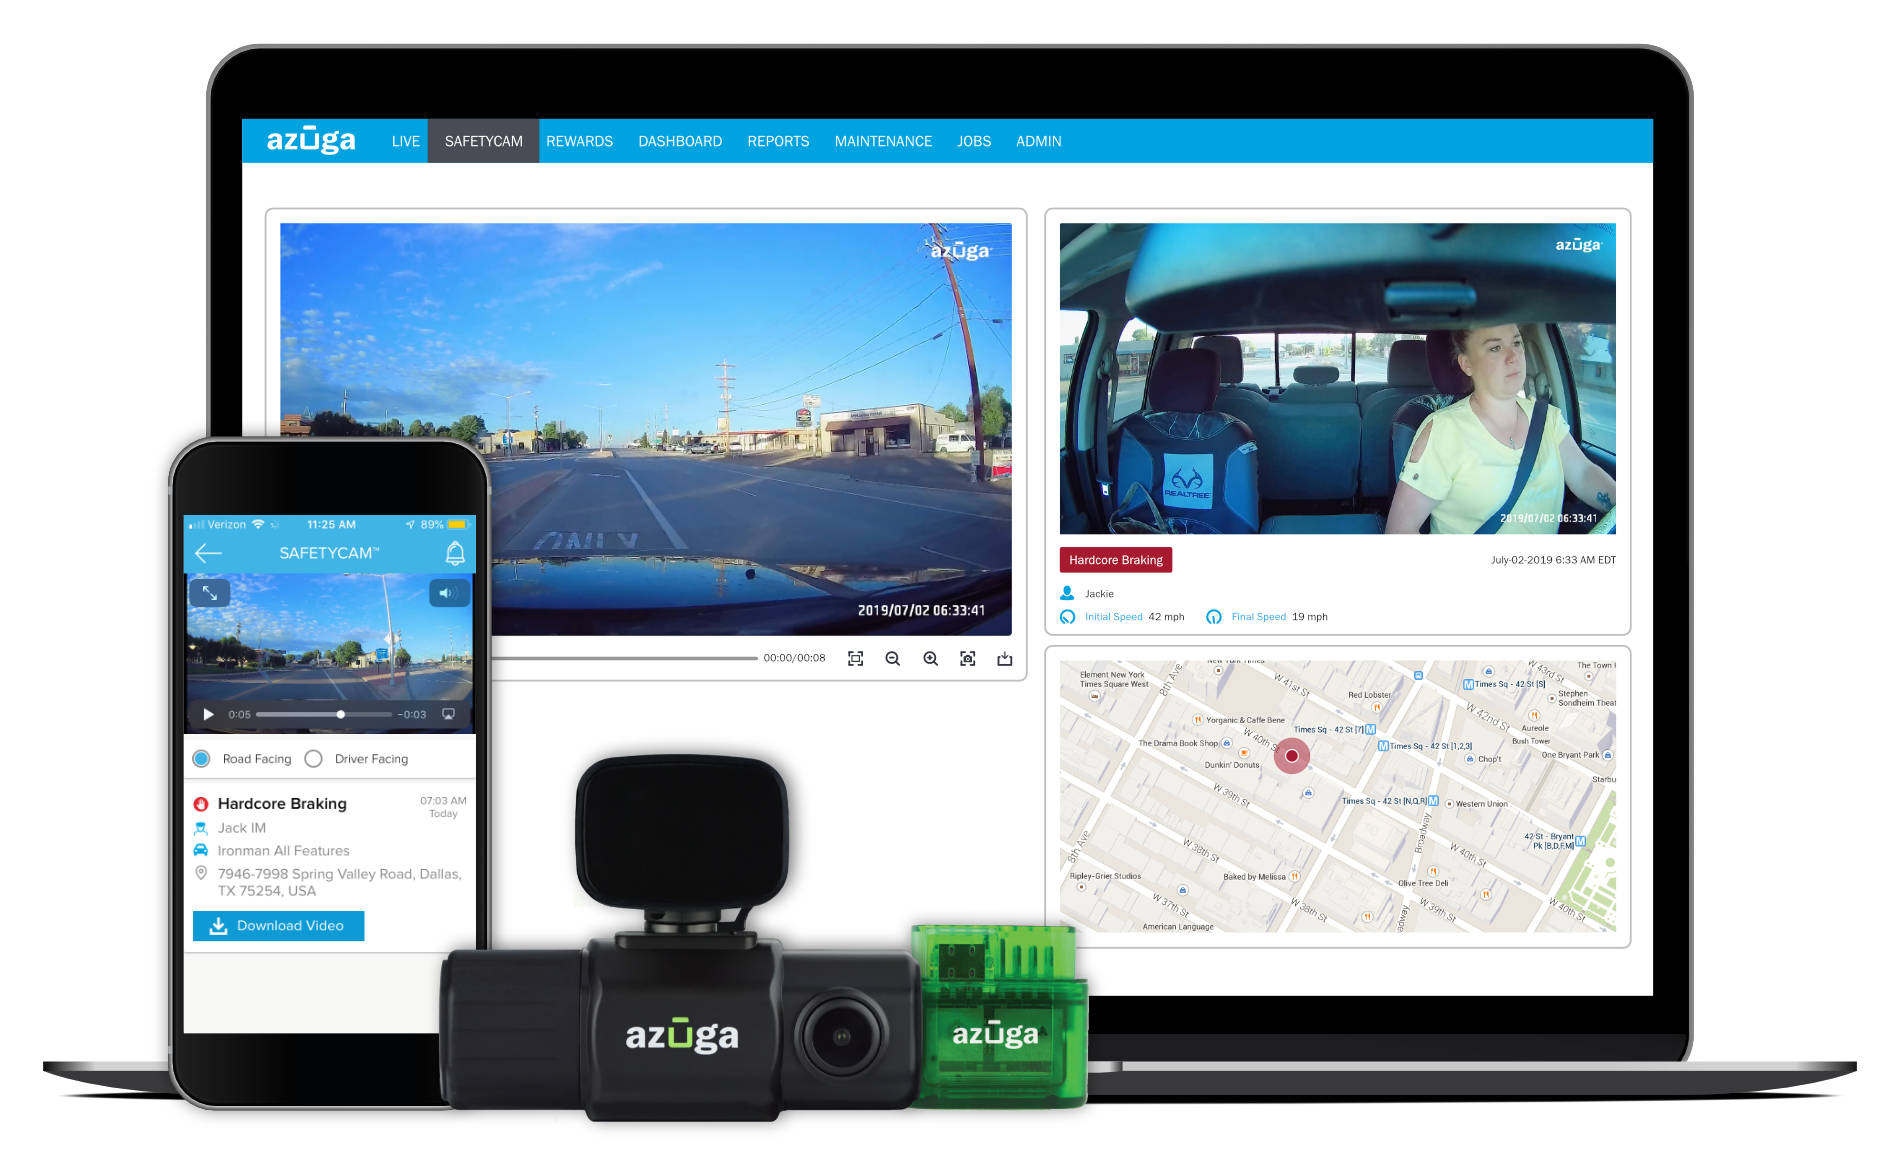 Fleet dash camera and tracking technology